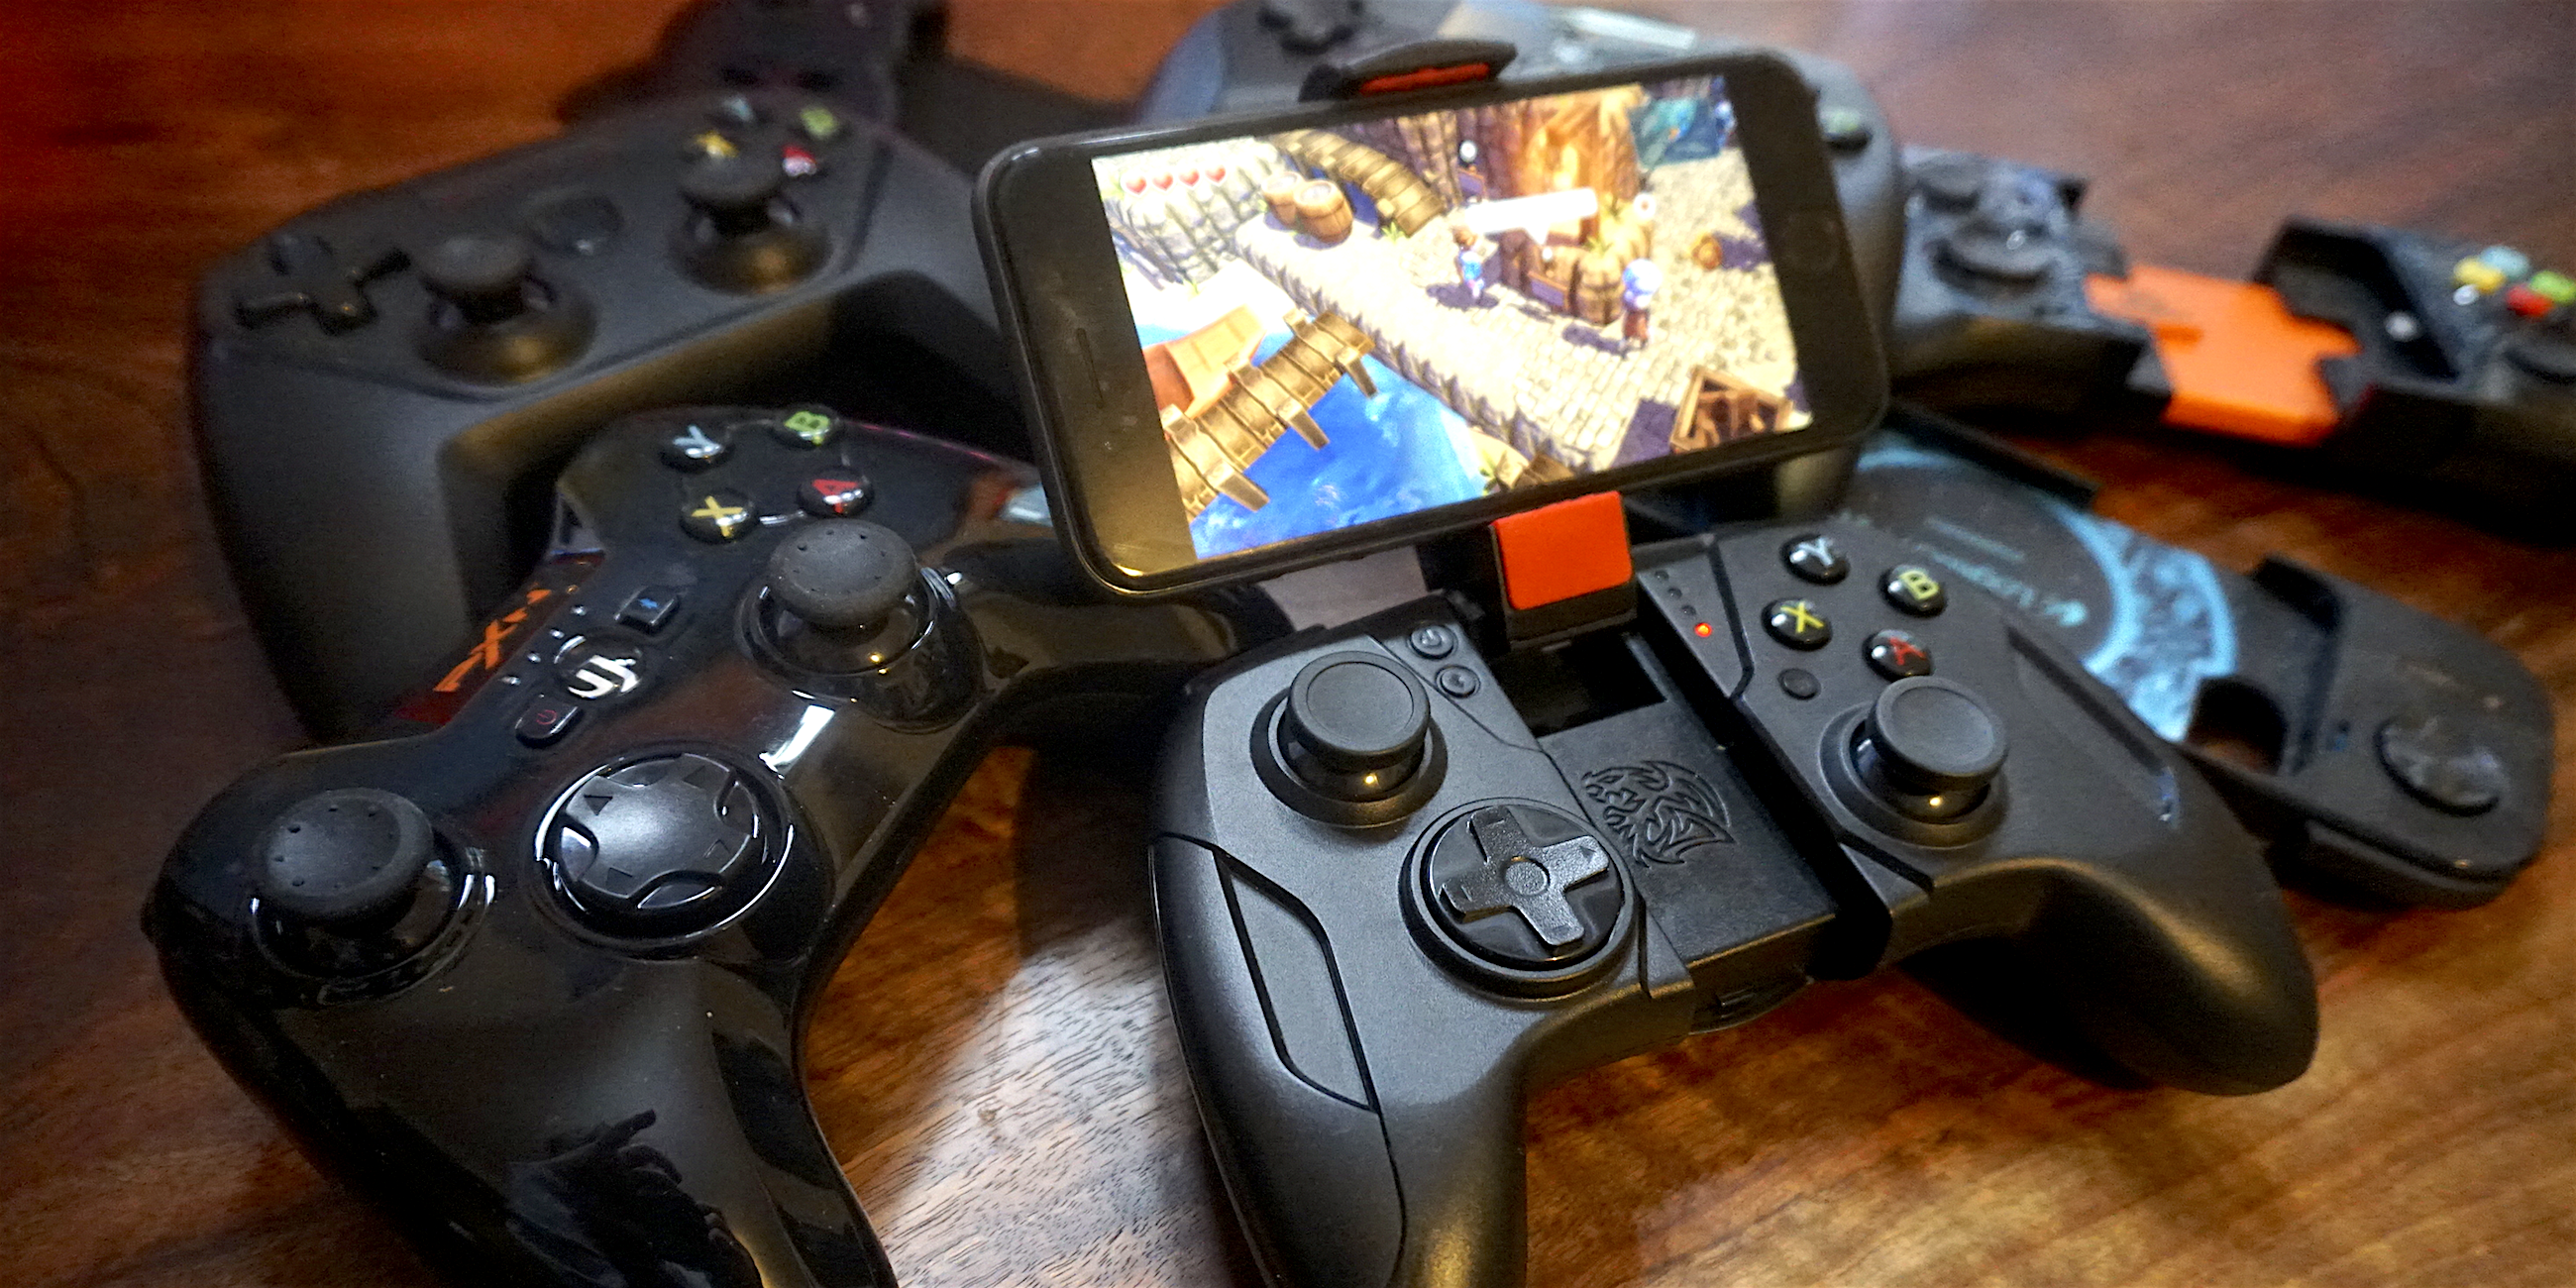 """<span href=""""https://9to5mac.com/2016/12/22/best-made-for-iphone-ipad-apple-tv-game-controllers/"""">El mejor-para-iPhone, iPad & Apple TV controladores de juegos</a>"""